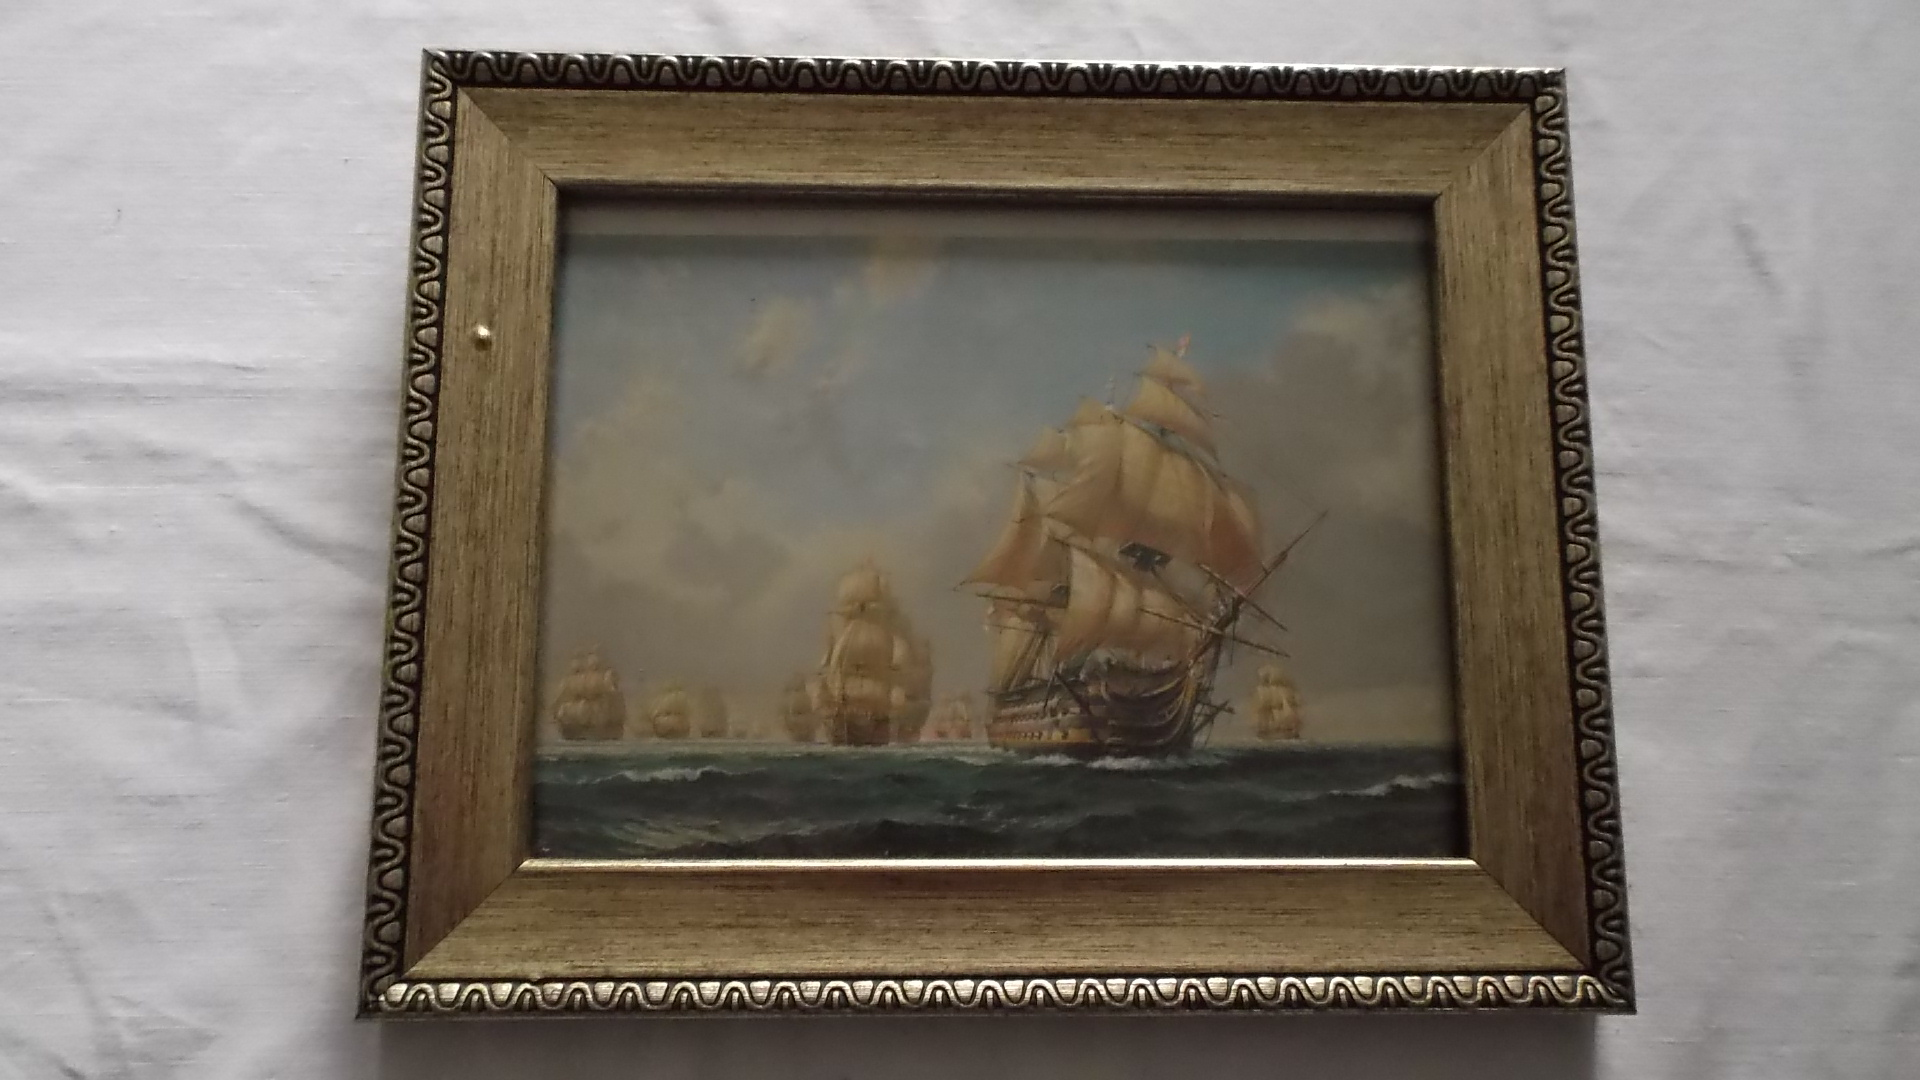 PAIR OF FRAMED PICTURES EACH SHOWING A BATTLE OF TRAFALGAR SCENE